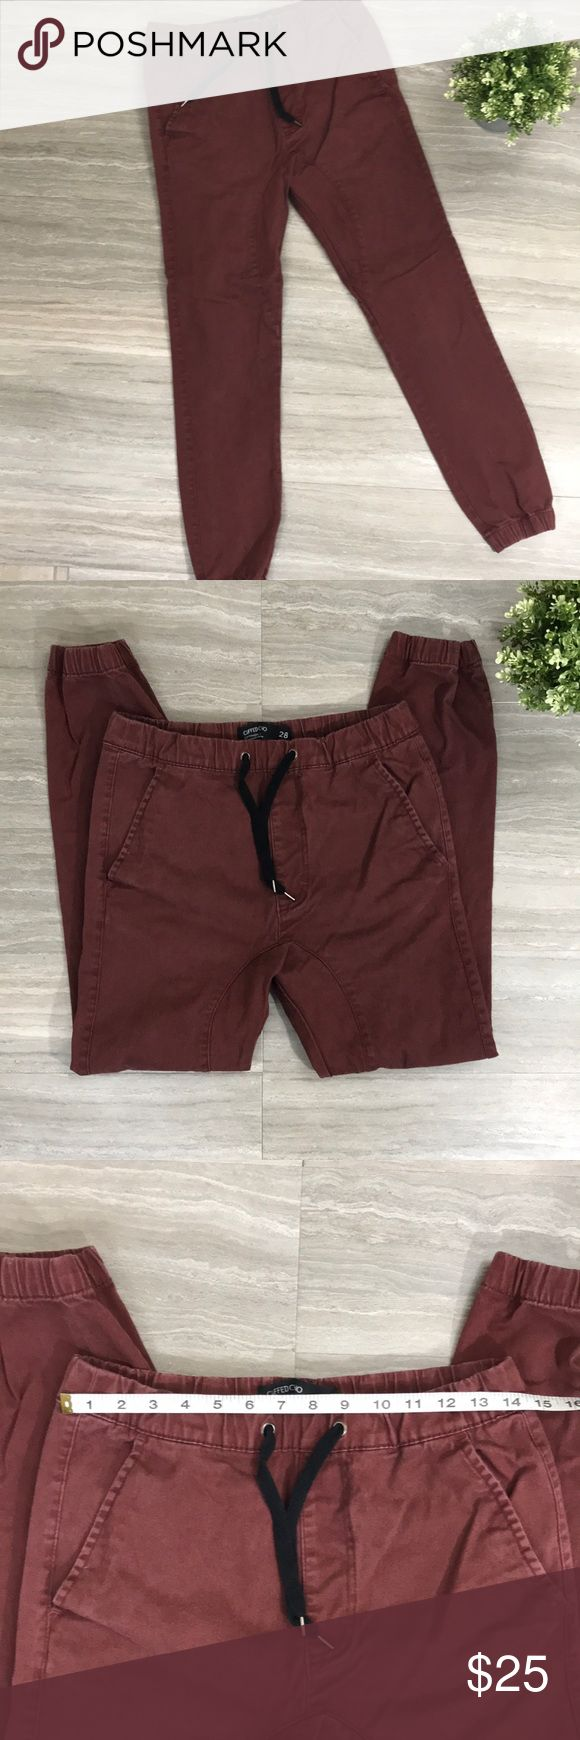 Cotton On cuffed chino. Slim fit. Cotton On Brand. Cuffed chino. Slim fit.  Size 28  See photos for measurements. Cotton On Pants Chinos & Khakis